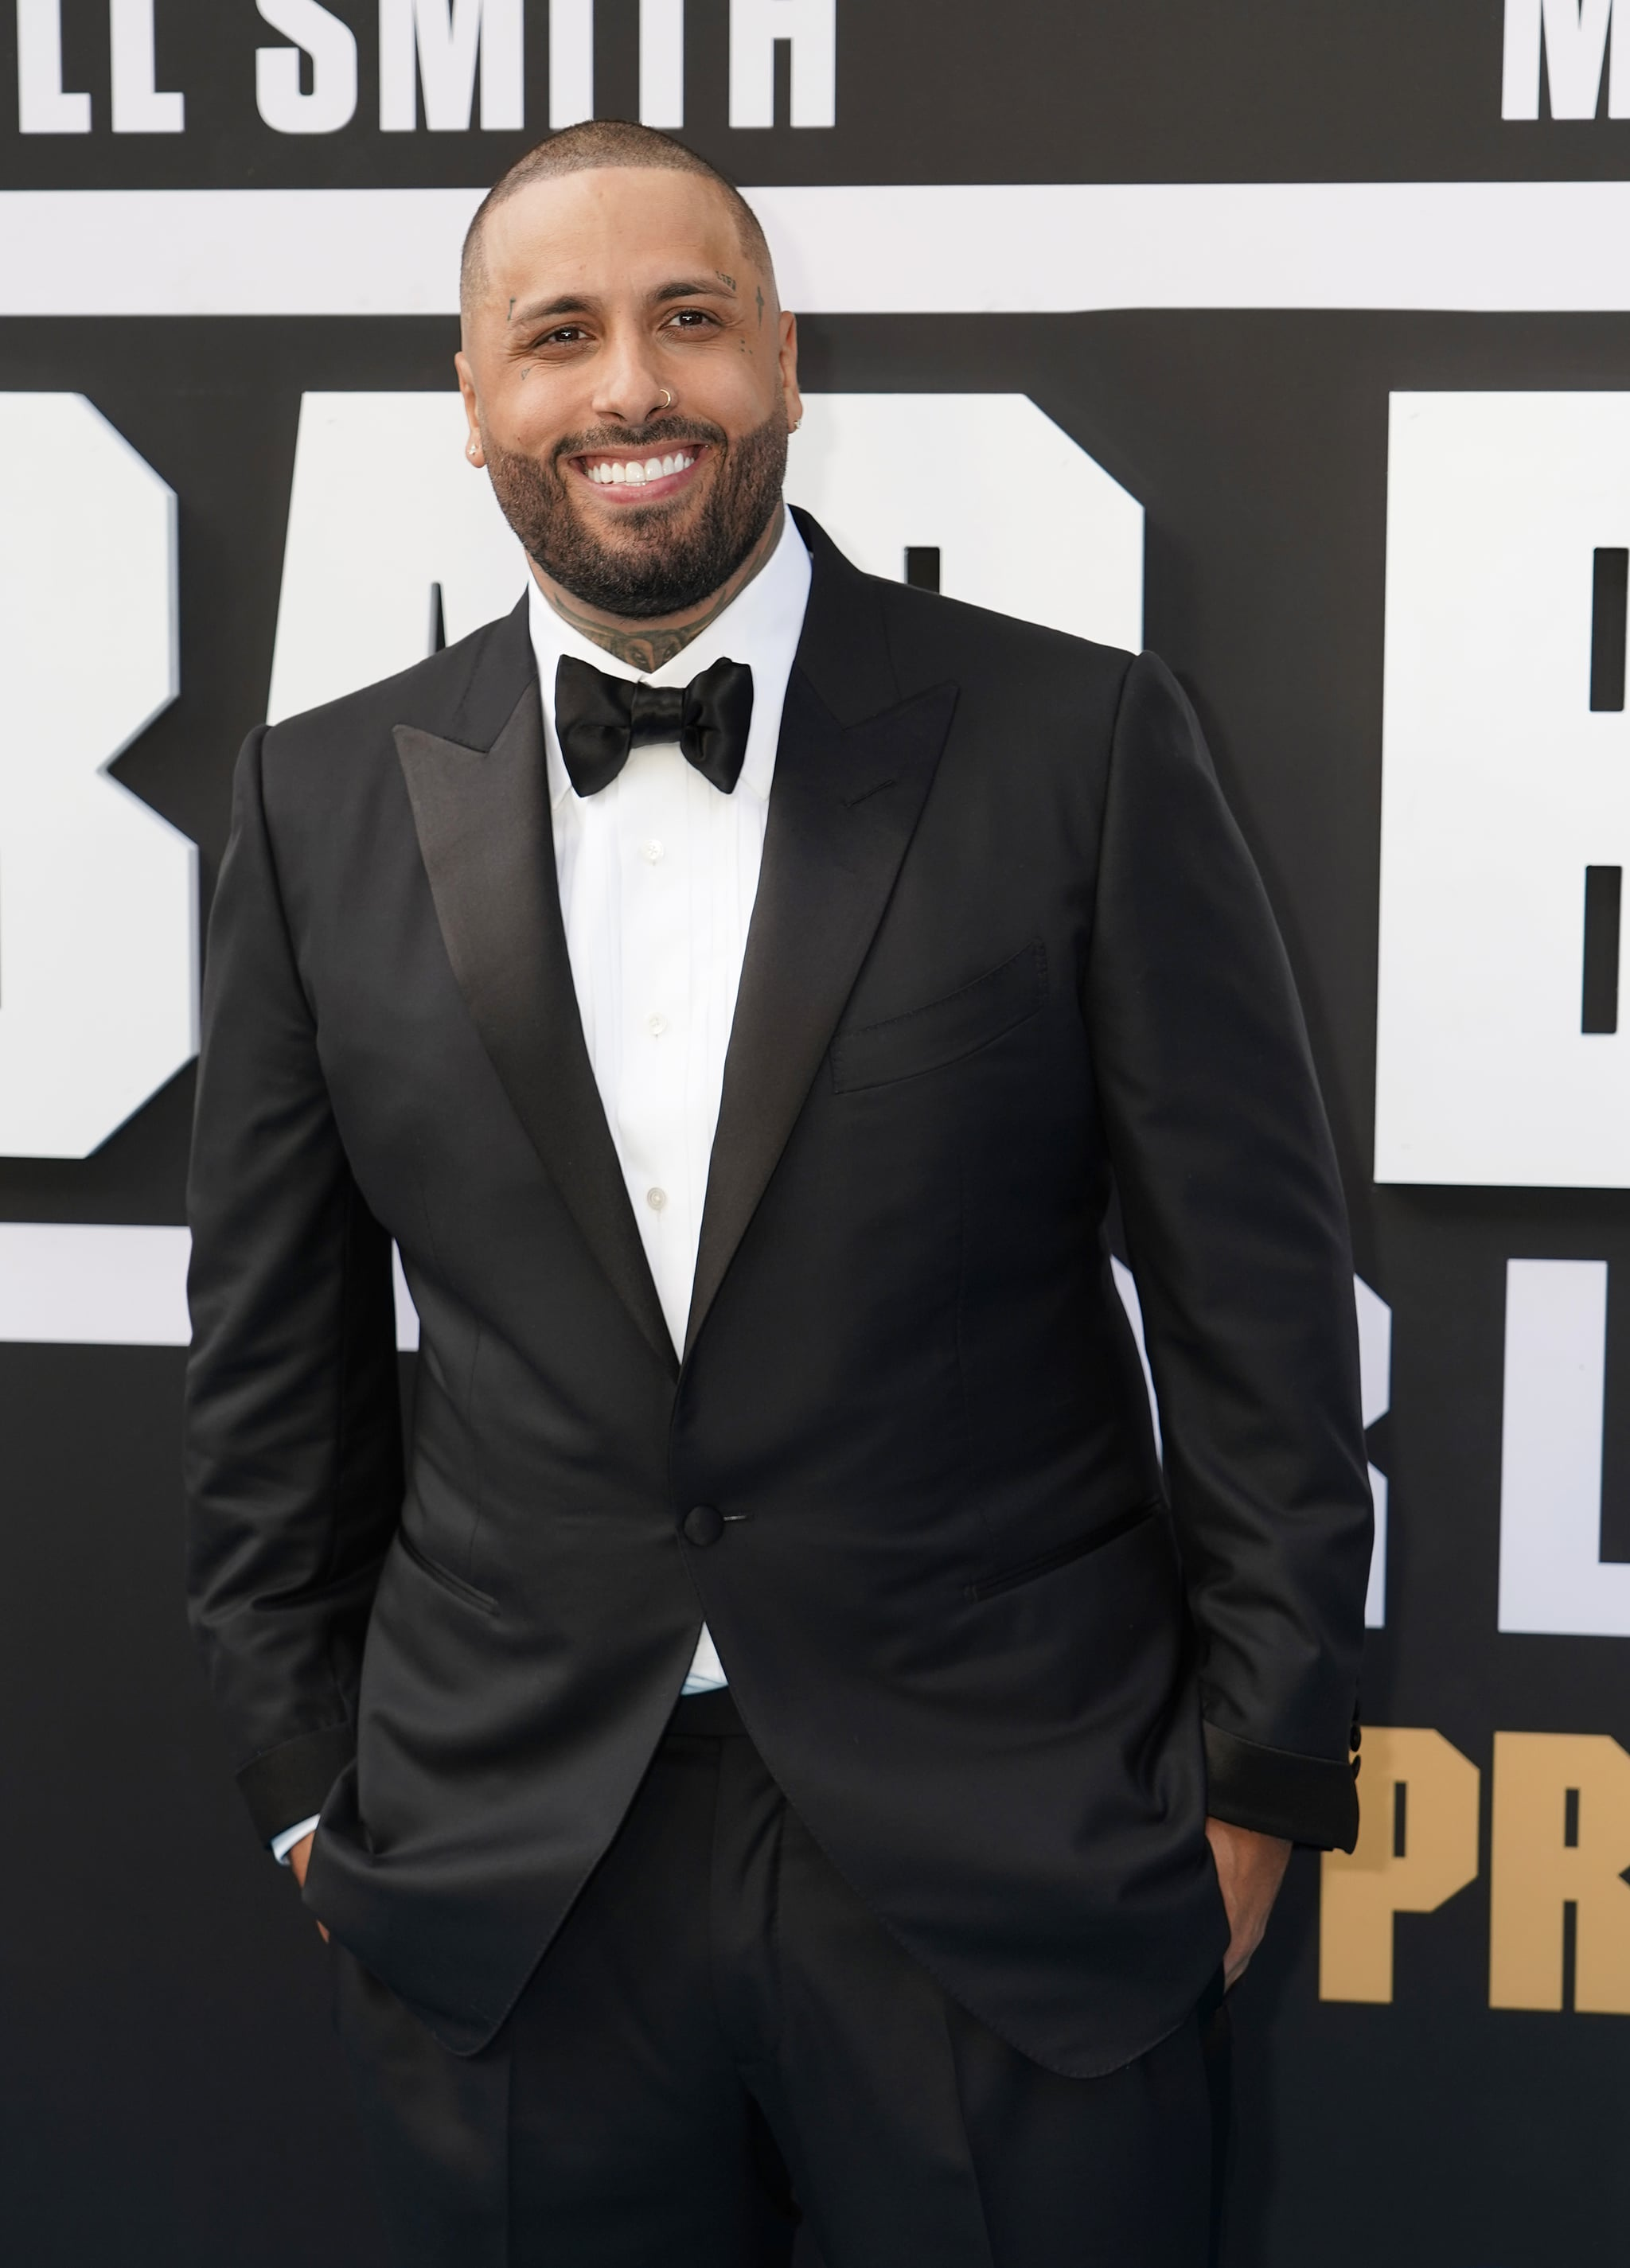 MIAMI, FLORIDA - JANUARY 12: Nicky Jam attends the Bad Boys For Life Miami Premiere at Regal South Beach on January 12, 2020 in Miami, Florida. (Photo by Alexander Tamargo/Getty Images for Sony Pictures Entertainment)